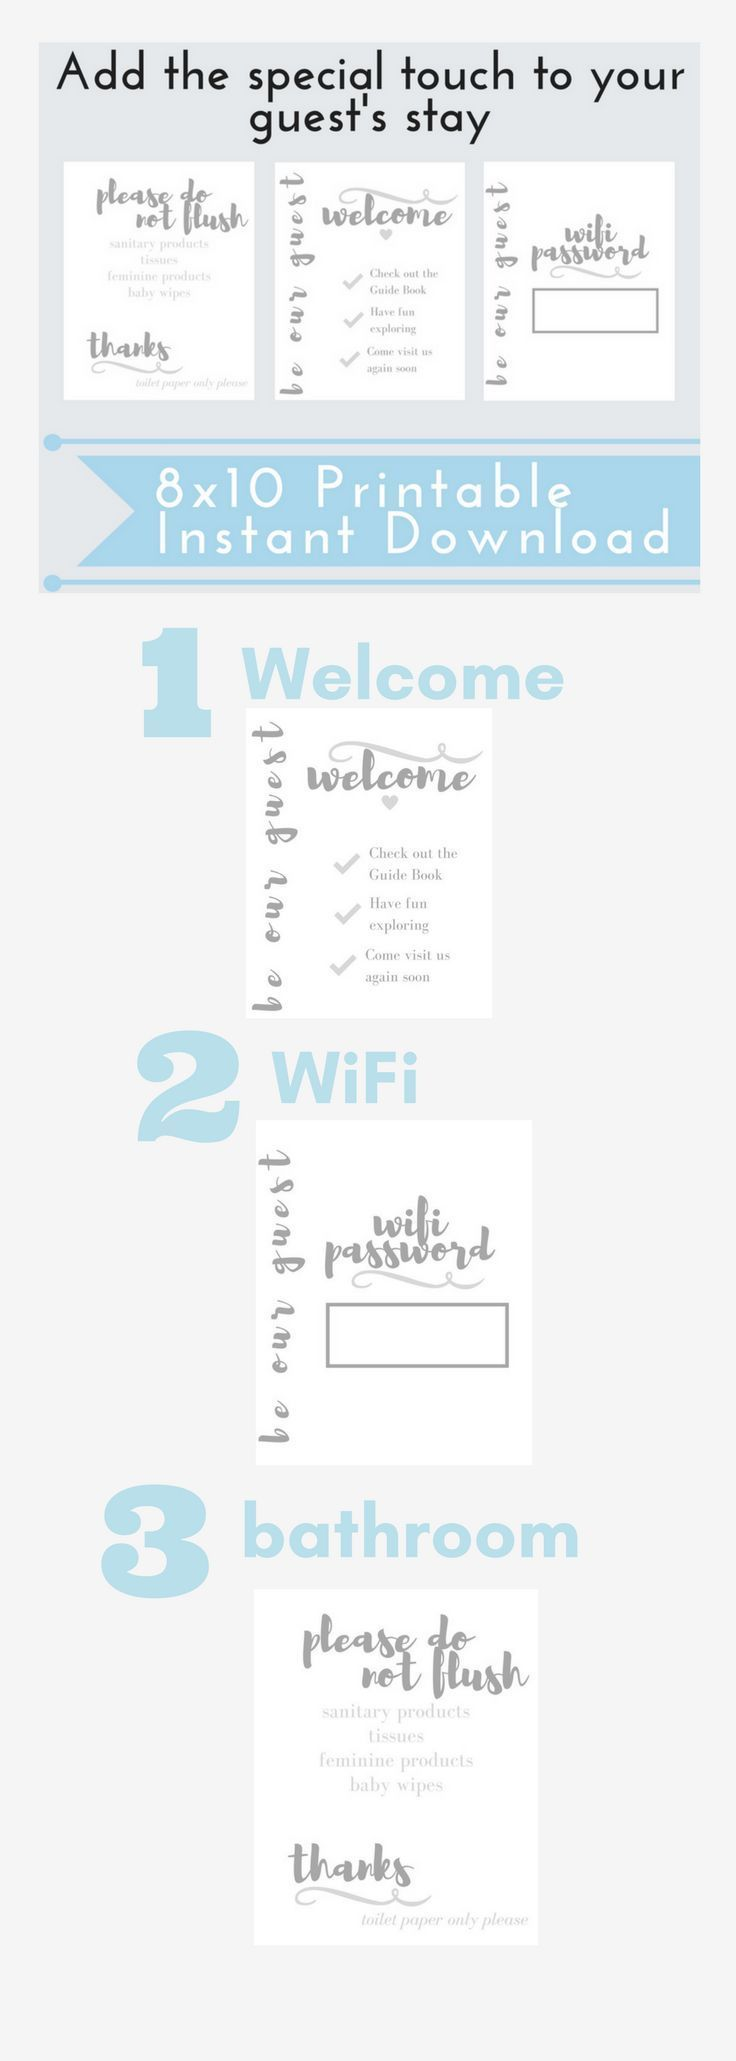 This set is easy to print, makes decorating your home easy and adds the special touch to your guest's stay. Decorate with this wifi password sign, bathroom 'do not flush' sign and welcome sign. Download once and print as many as you need.This AirBnB 8x10 Printable Set is a great addition to your rental unit to add value and be seen as an experienced, thoughtful host. This bundle includes 3 signs. One for the wifi password, one for the bathroom and another with welcome instructions.